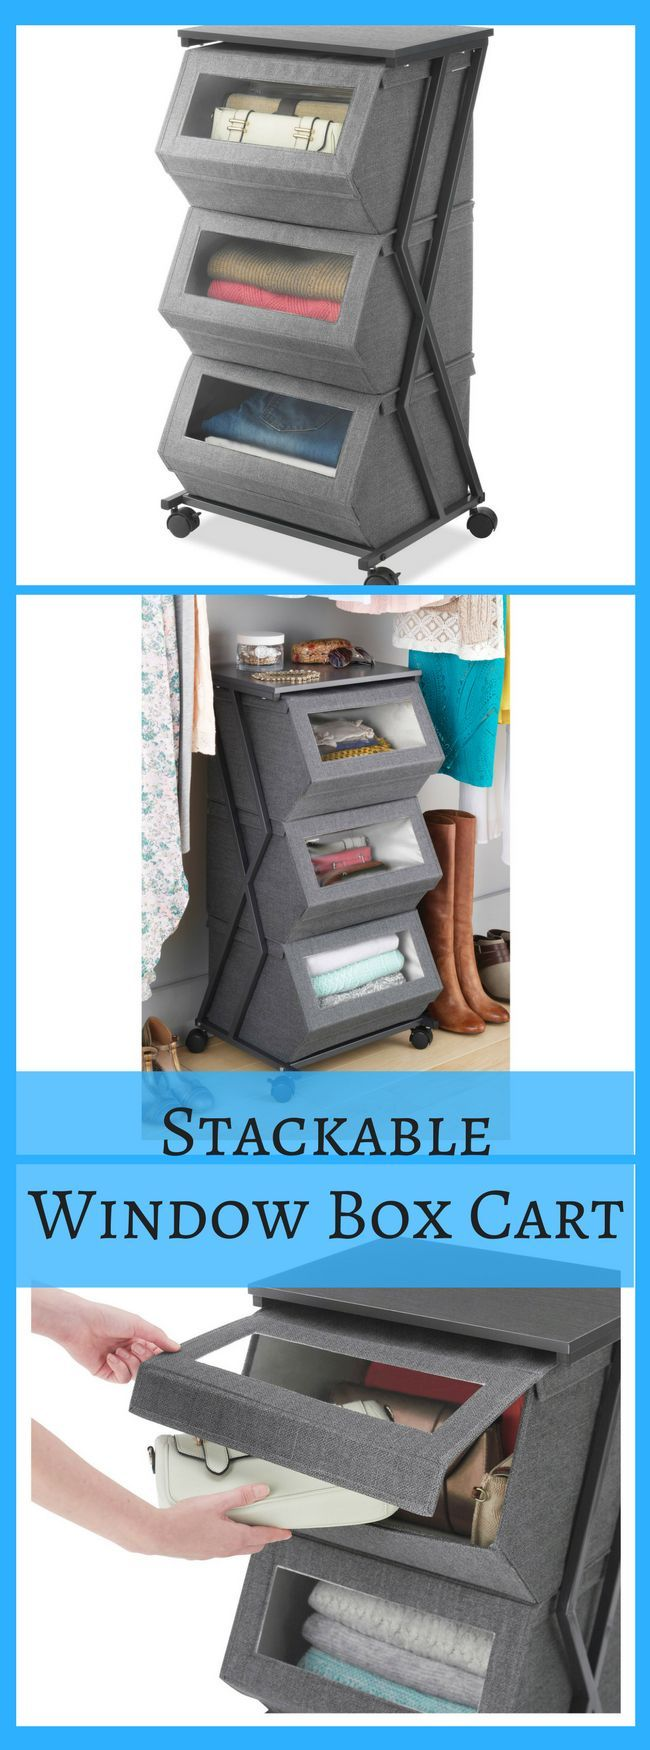 Stackable Window Box Cart  The three drawers included have a  see-thru window for an easy view of contents. The magnetic lift-up front lets you access contents without removing box from cart. Wheels are included to allow for easy mobility. #organization #